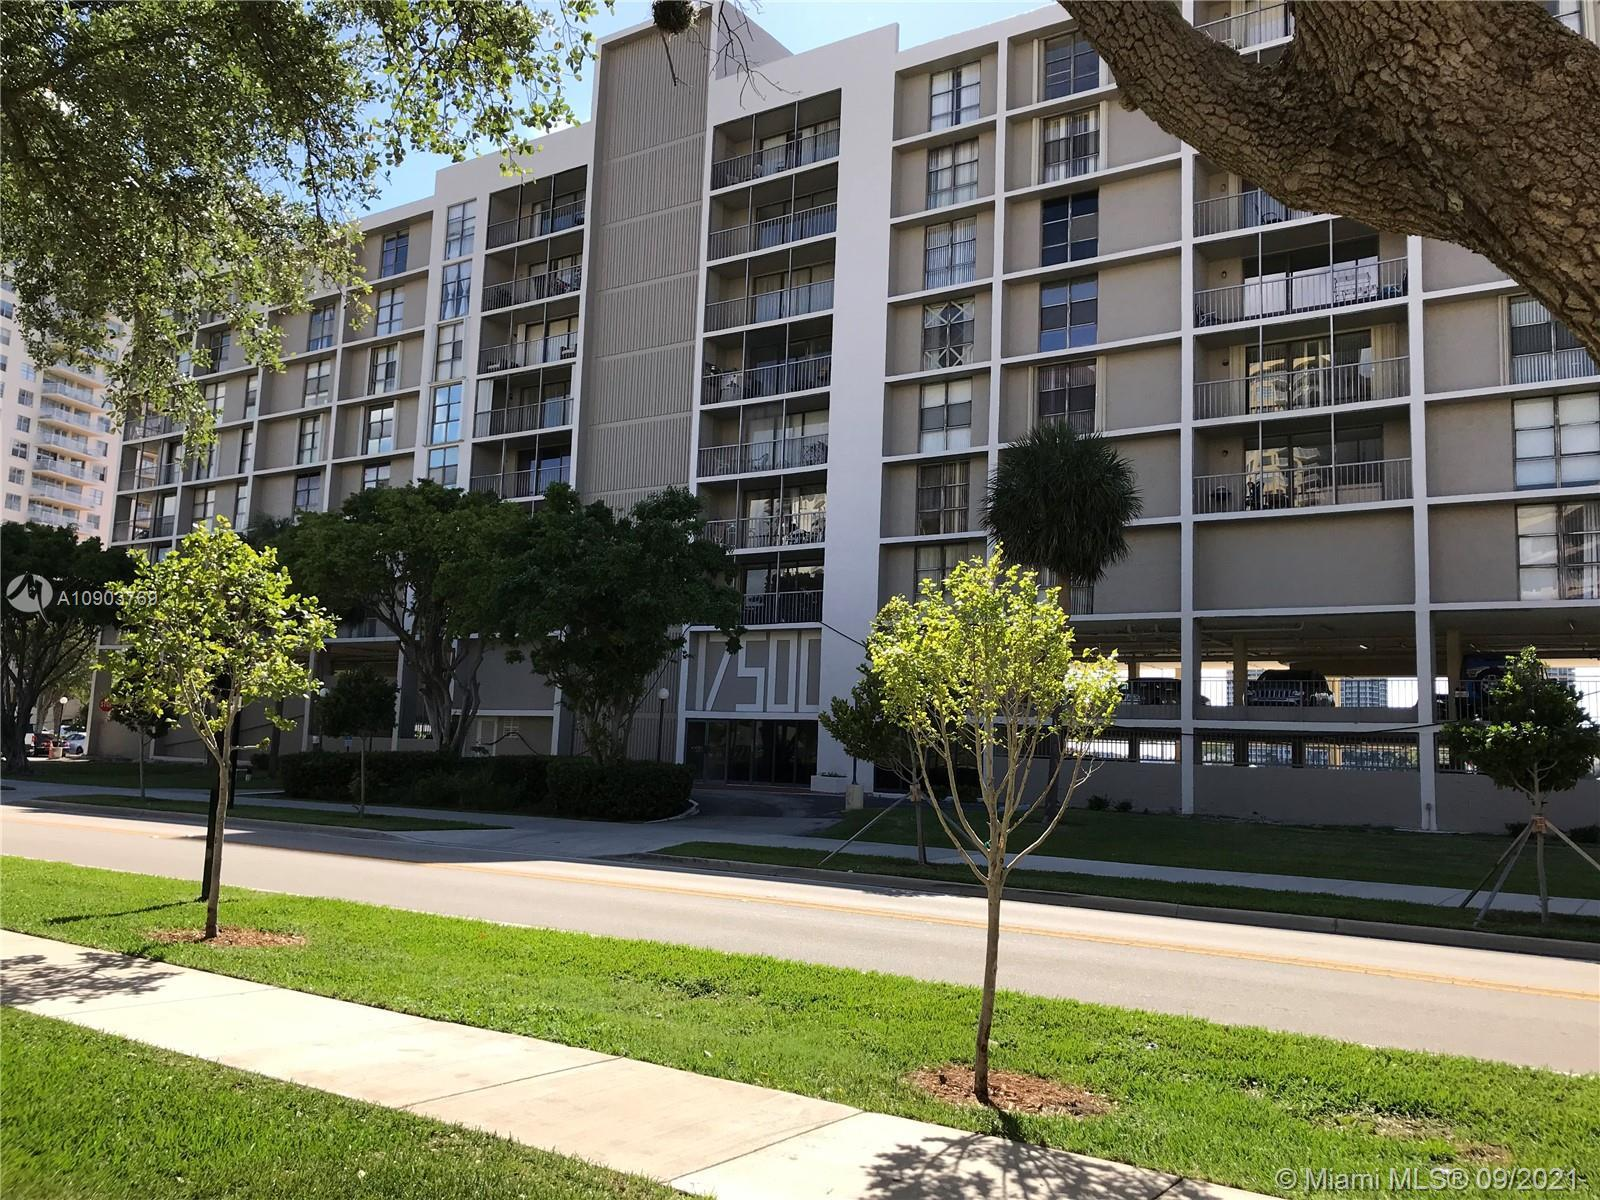 Bay front building 1 block from the beach. 1 bedroom and 1.5 baths. Eat in kitchen, tile throughout